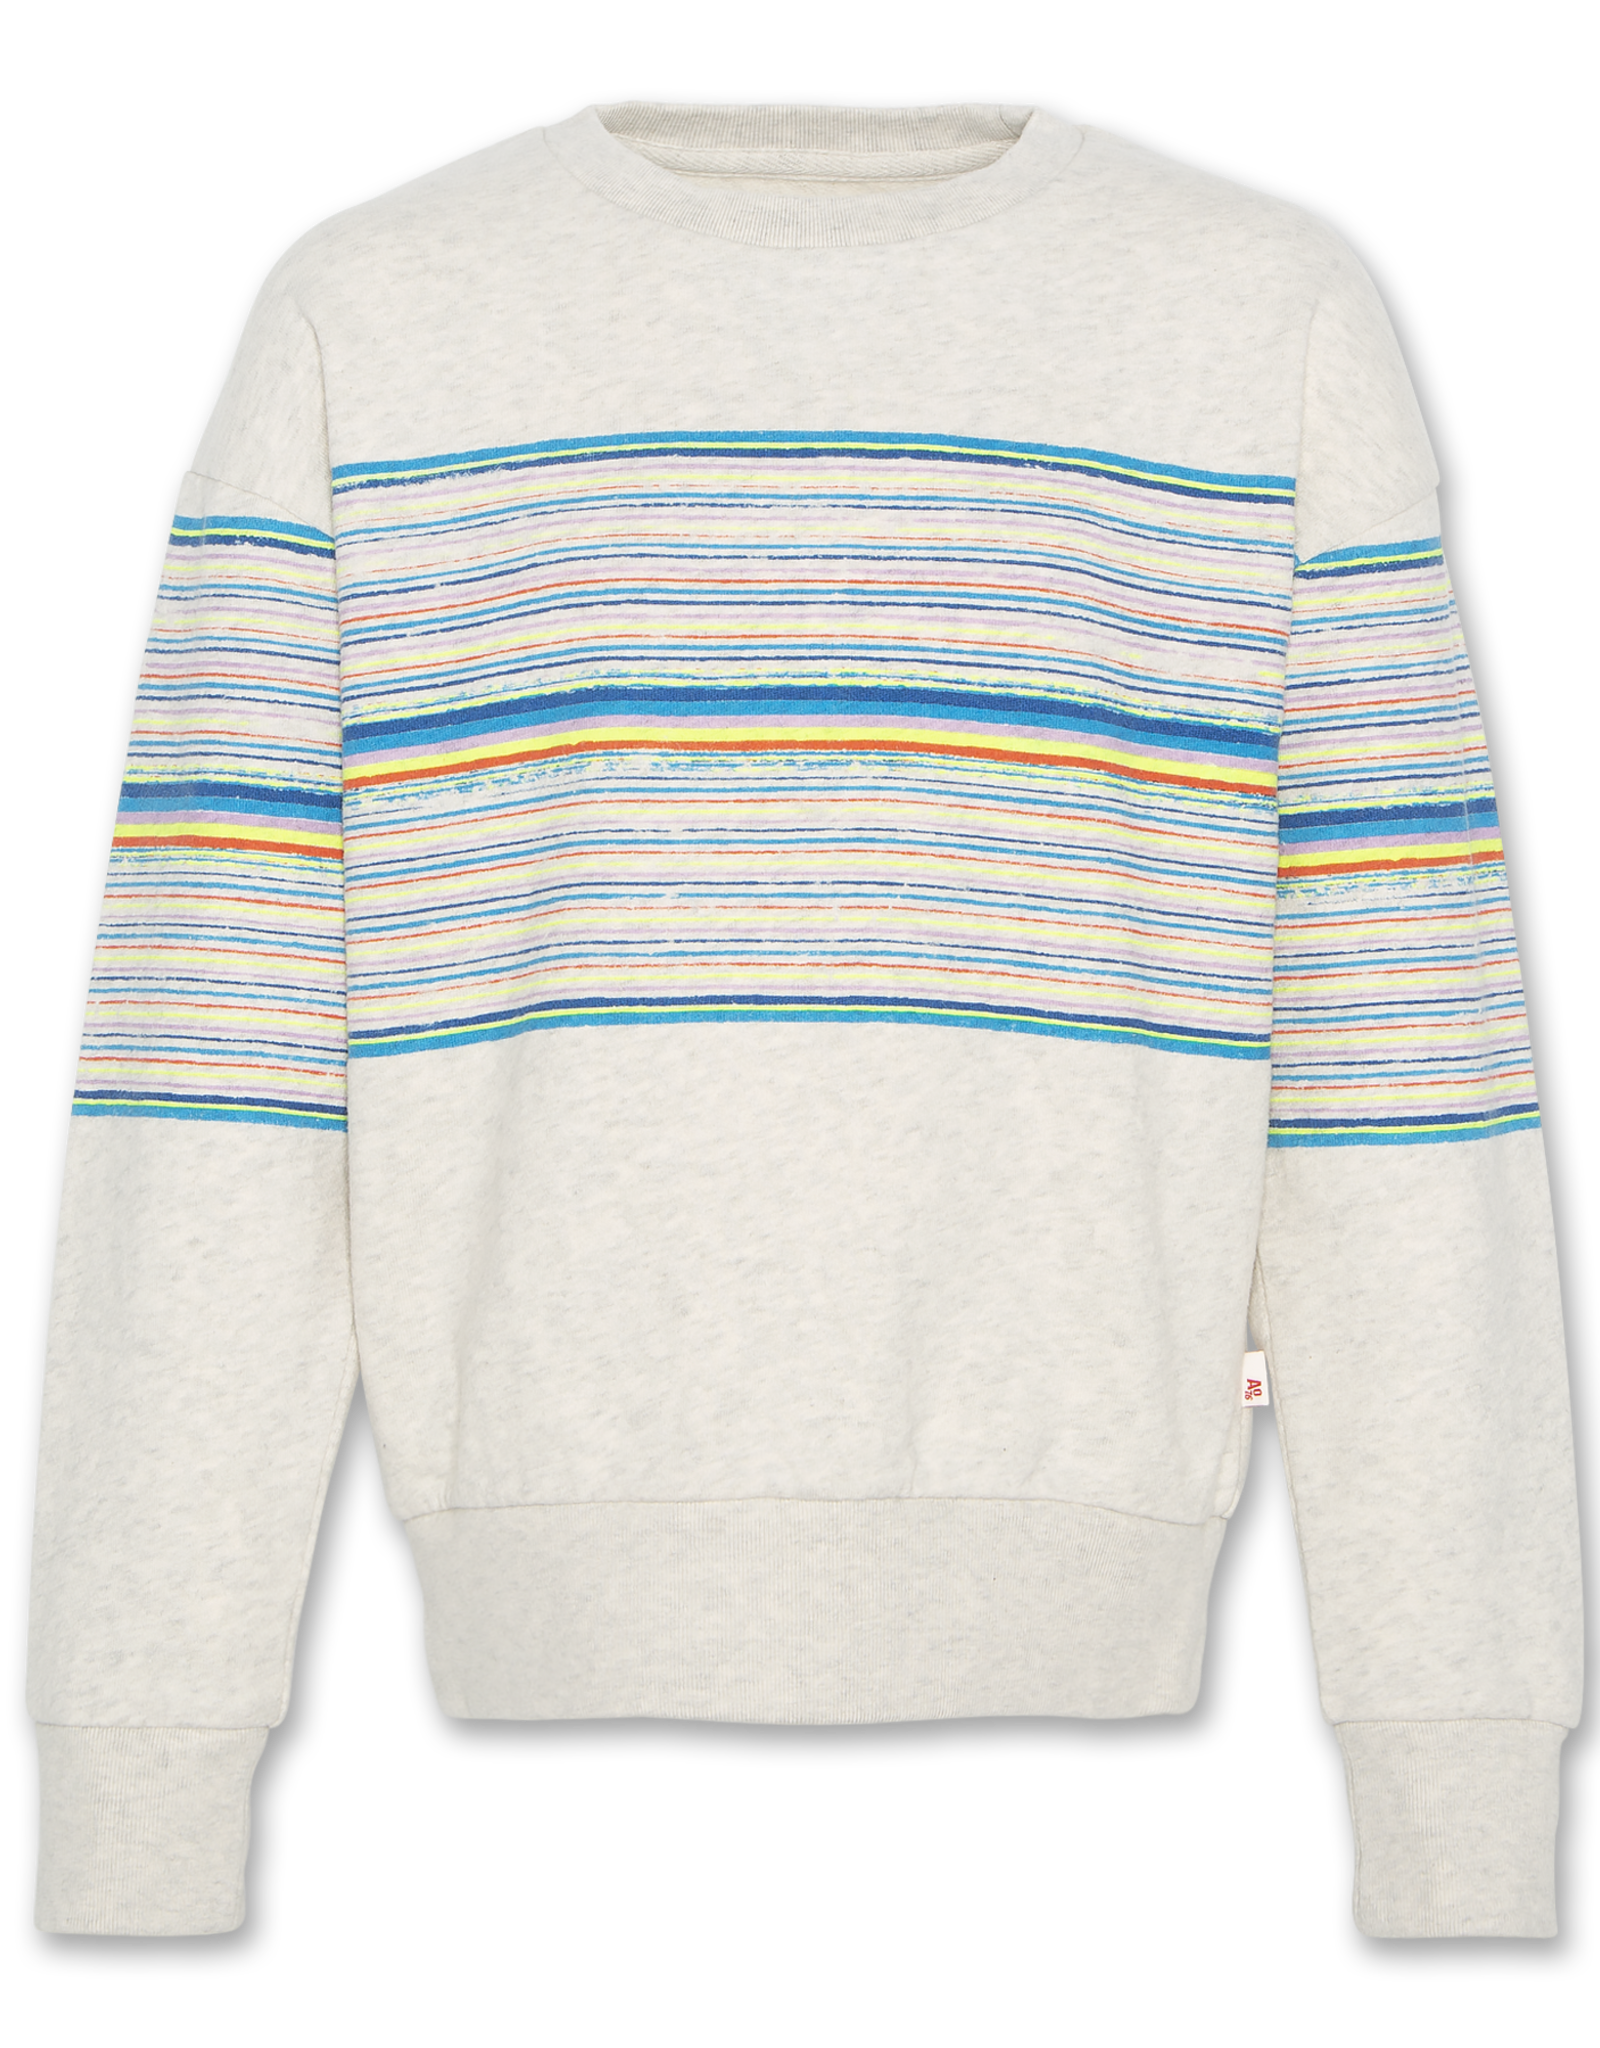 AMERICAN OUTFITTERS Ao76 C-neck Oversized Stripes